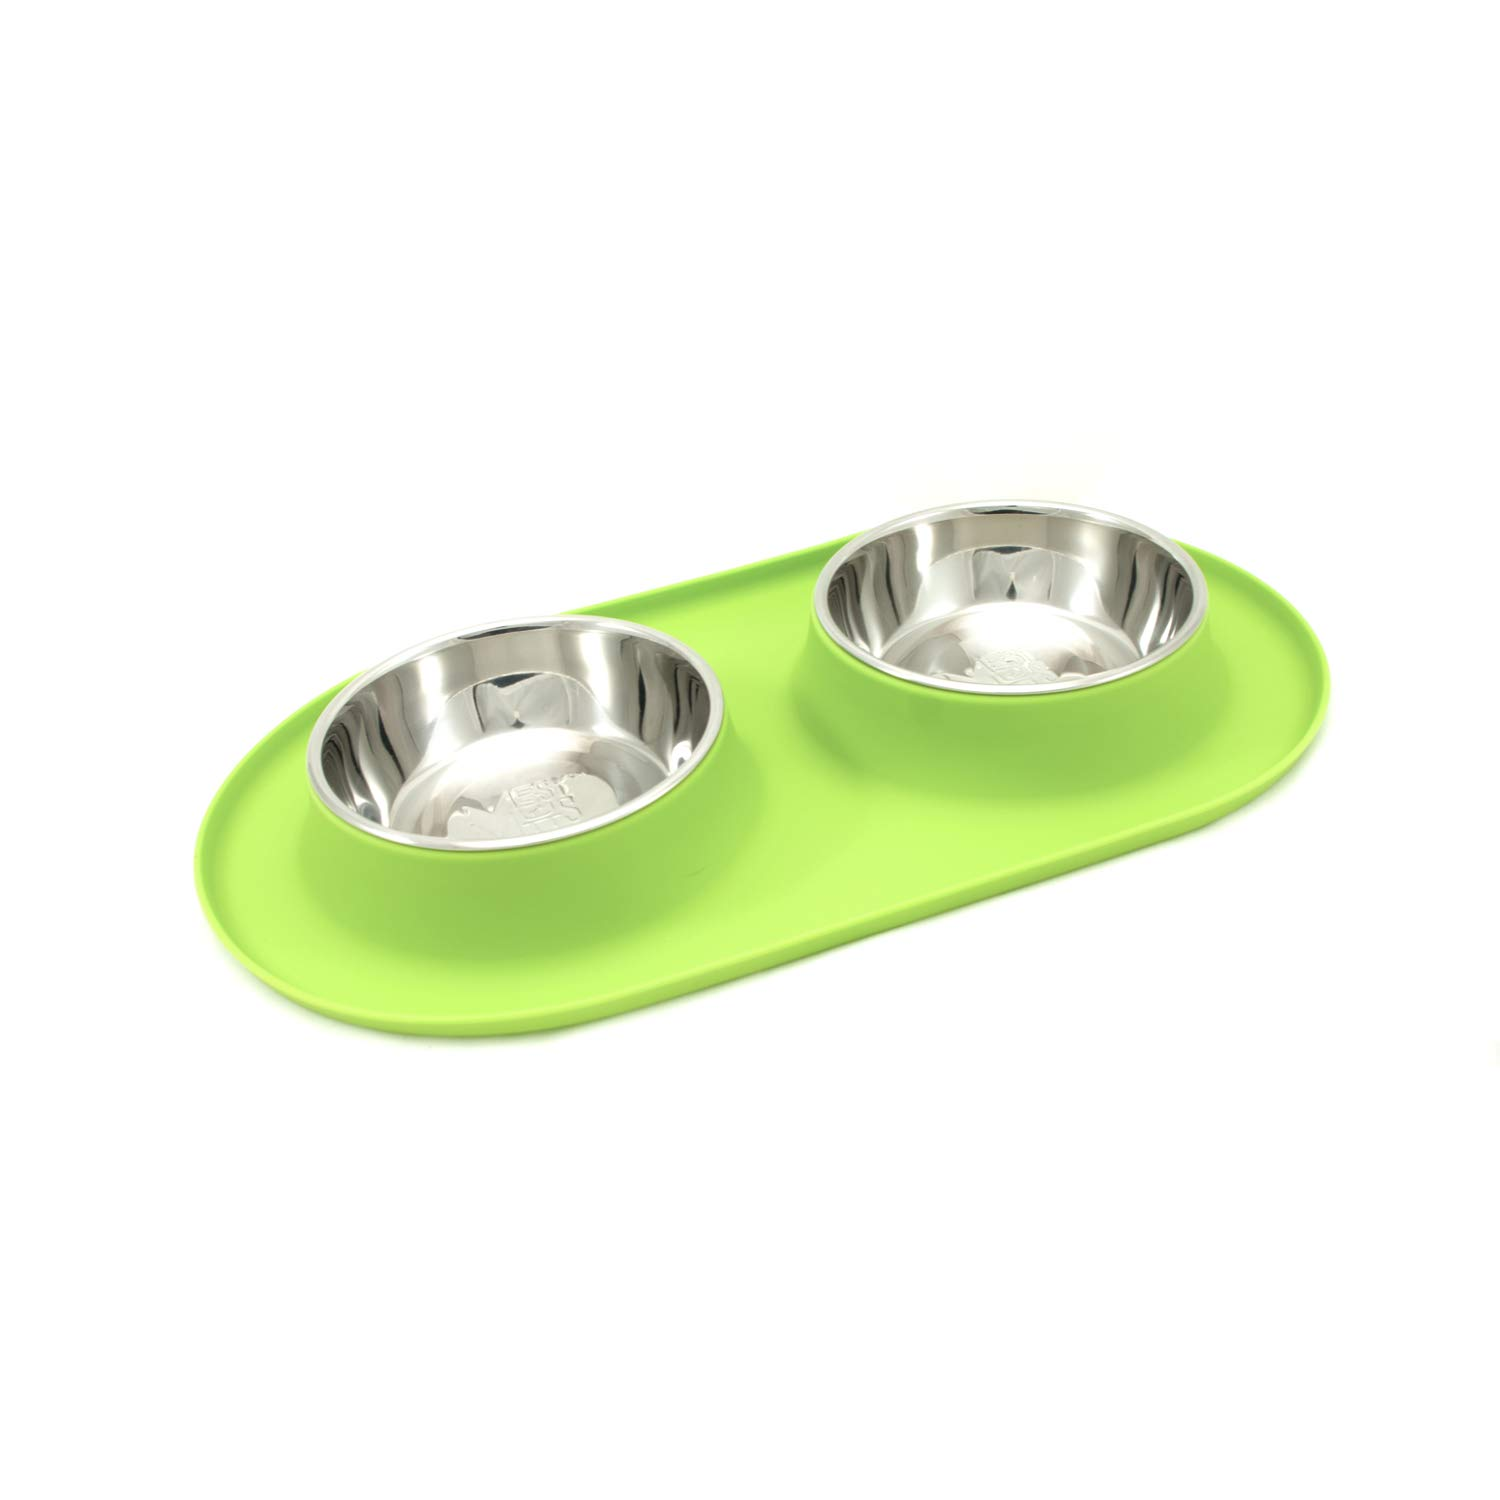 (Medium   1.5 Cups Per Bowl, Green) Messy Mutts Stainless Steel Double Dog Feeder with Non-Slip Silicone Base